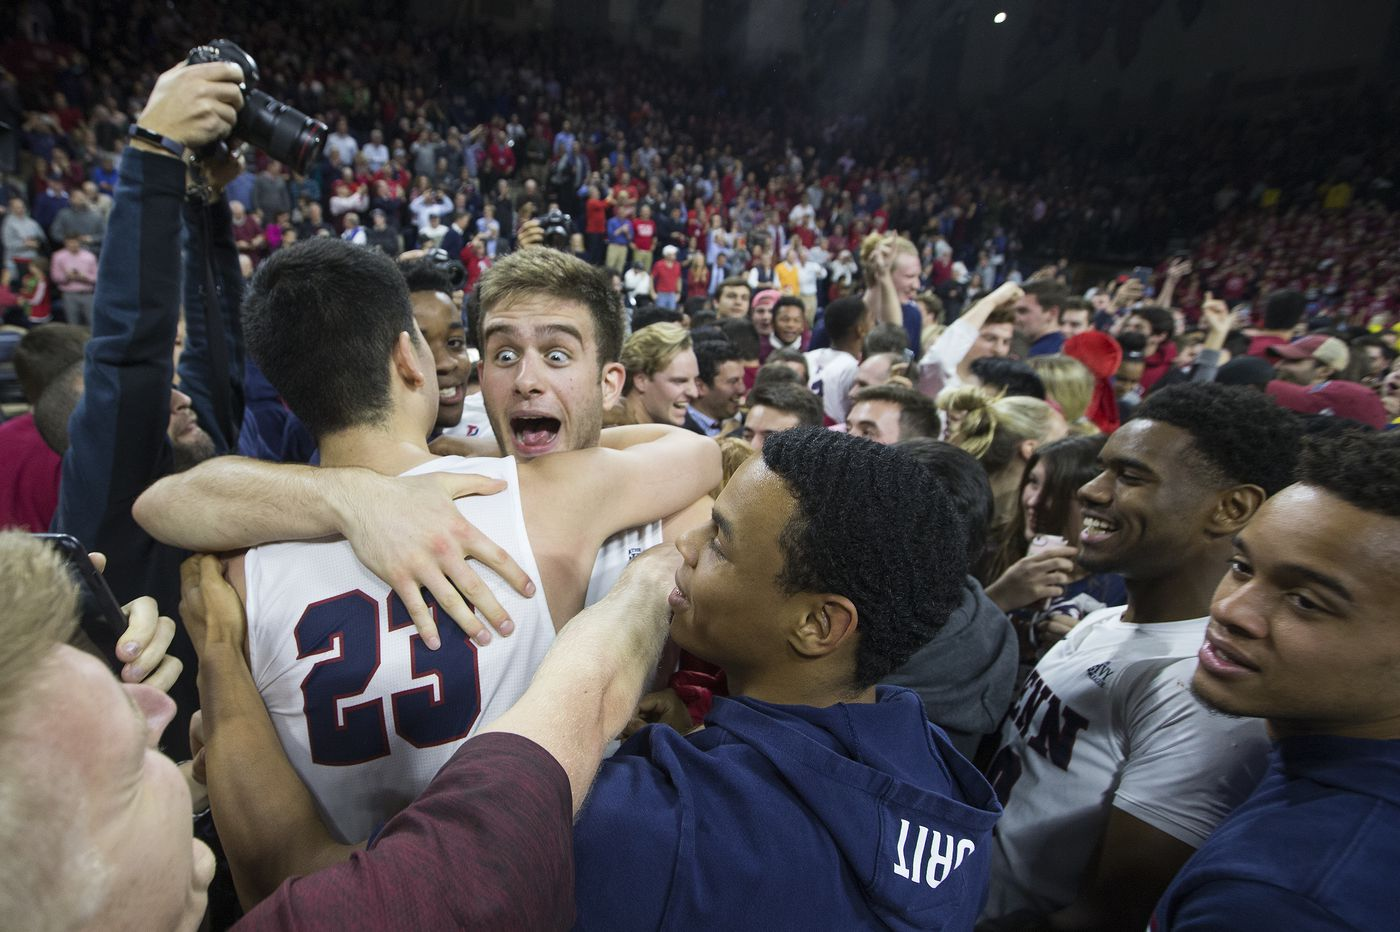 Penn basketball snaps Villanova's Big 5 streak, wins, 78-75, in a Palestra classic